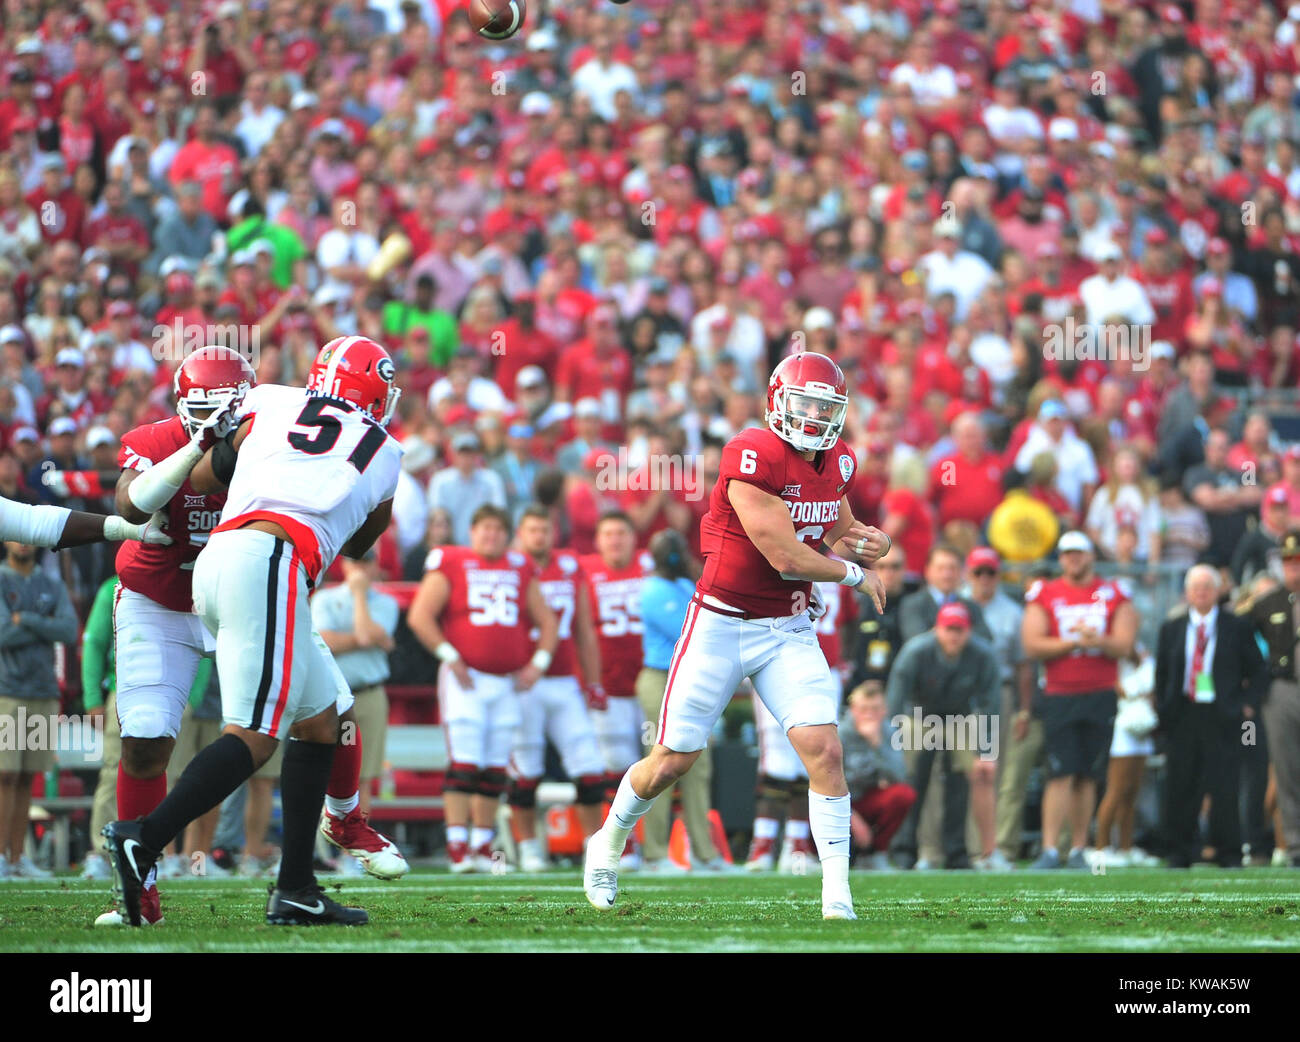 Pasadena, California, USA. 01st Jan, 2018. Oklahoma Sooners quarterback Baker Mayfield #6 during the 2018 Rose Bowl Stock Photo